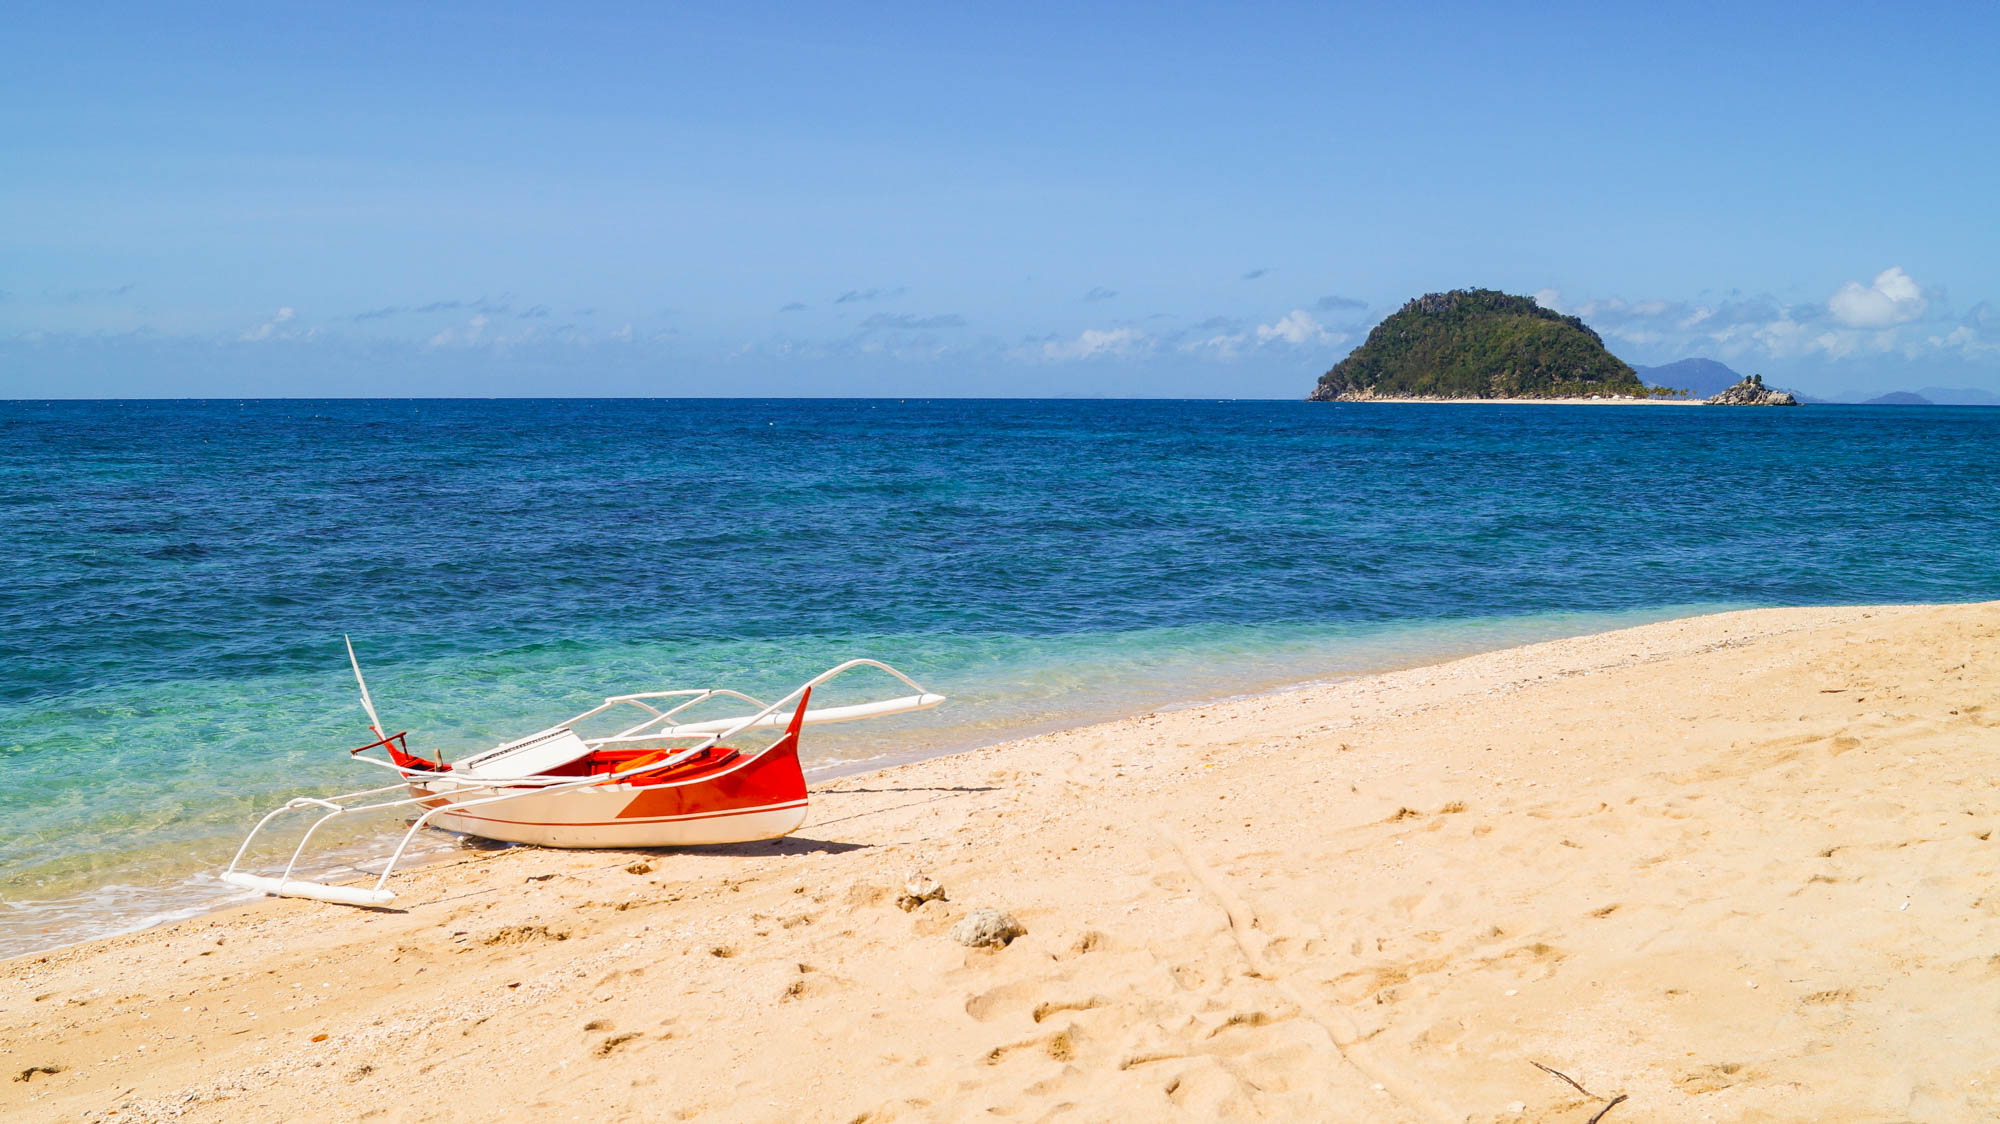 Philippines, Islas De Gigantes - Bantigue Sandbar Island - illumelation